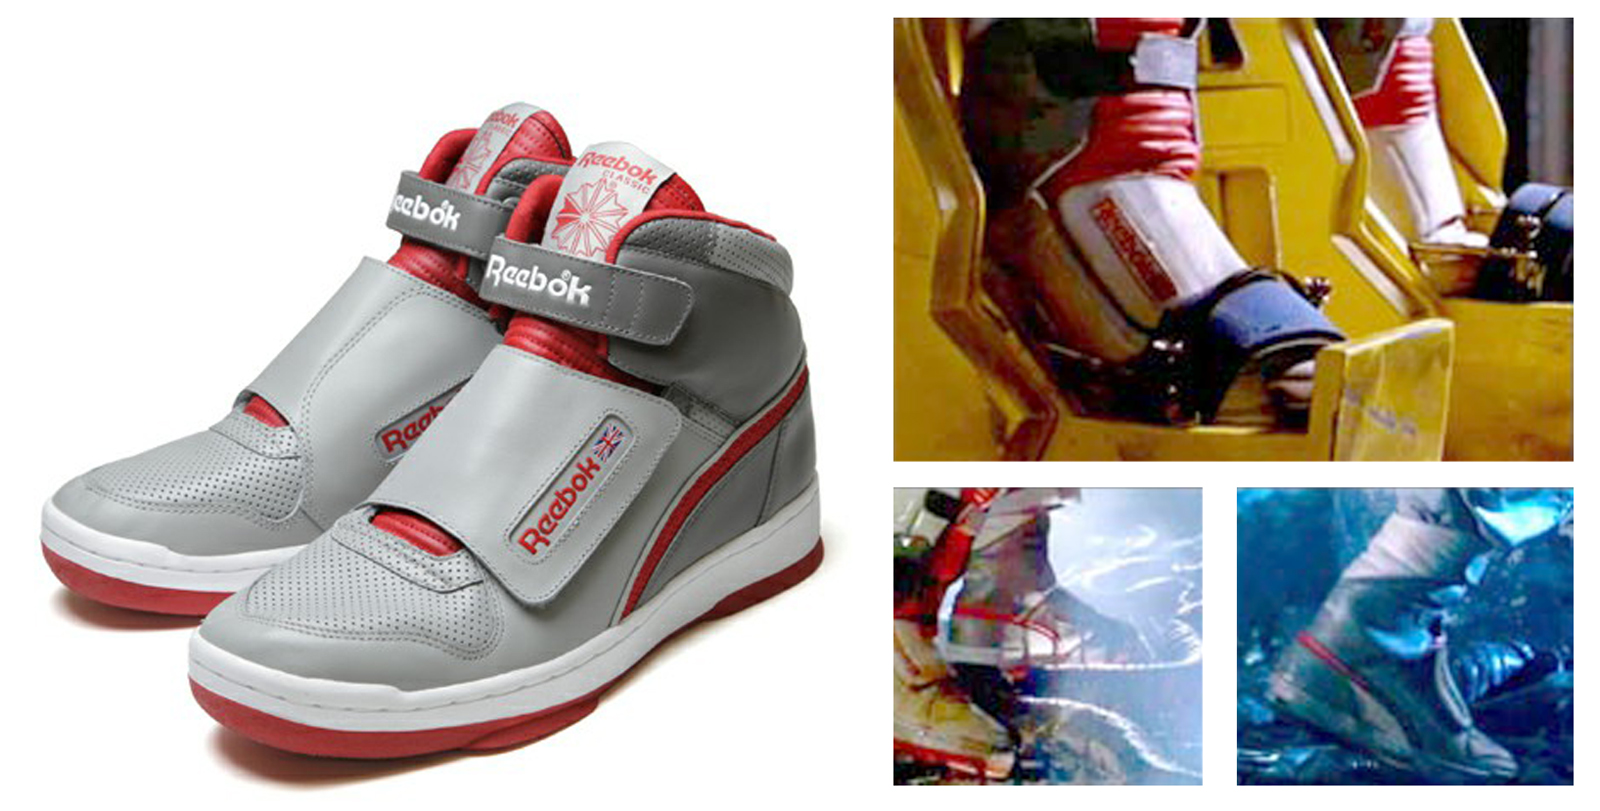 THE SUPER SECRET CLUBHOUSE  REEBOK ALIEN STOMPERS 9be35a7b9f